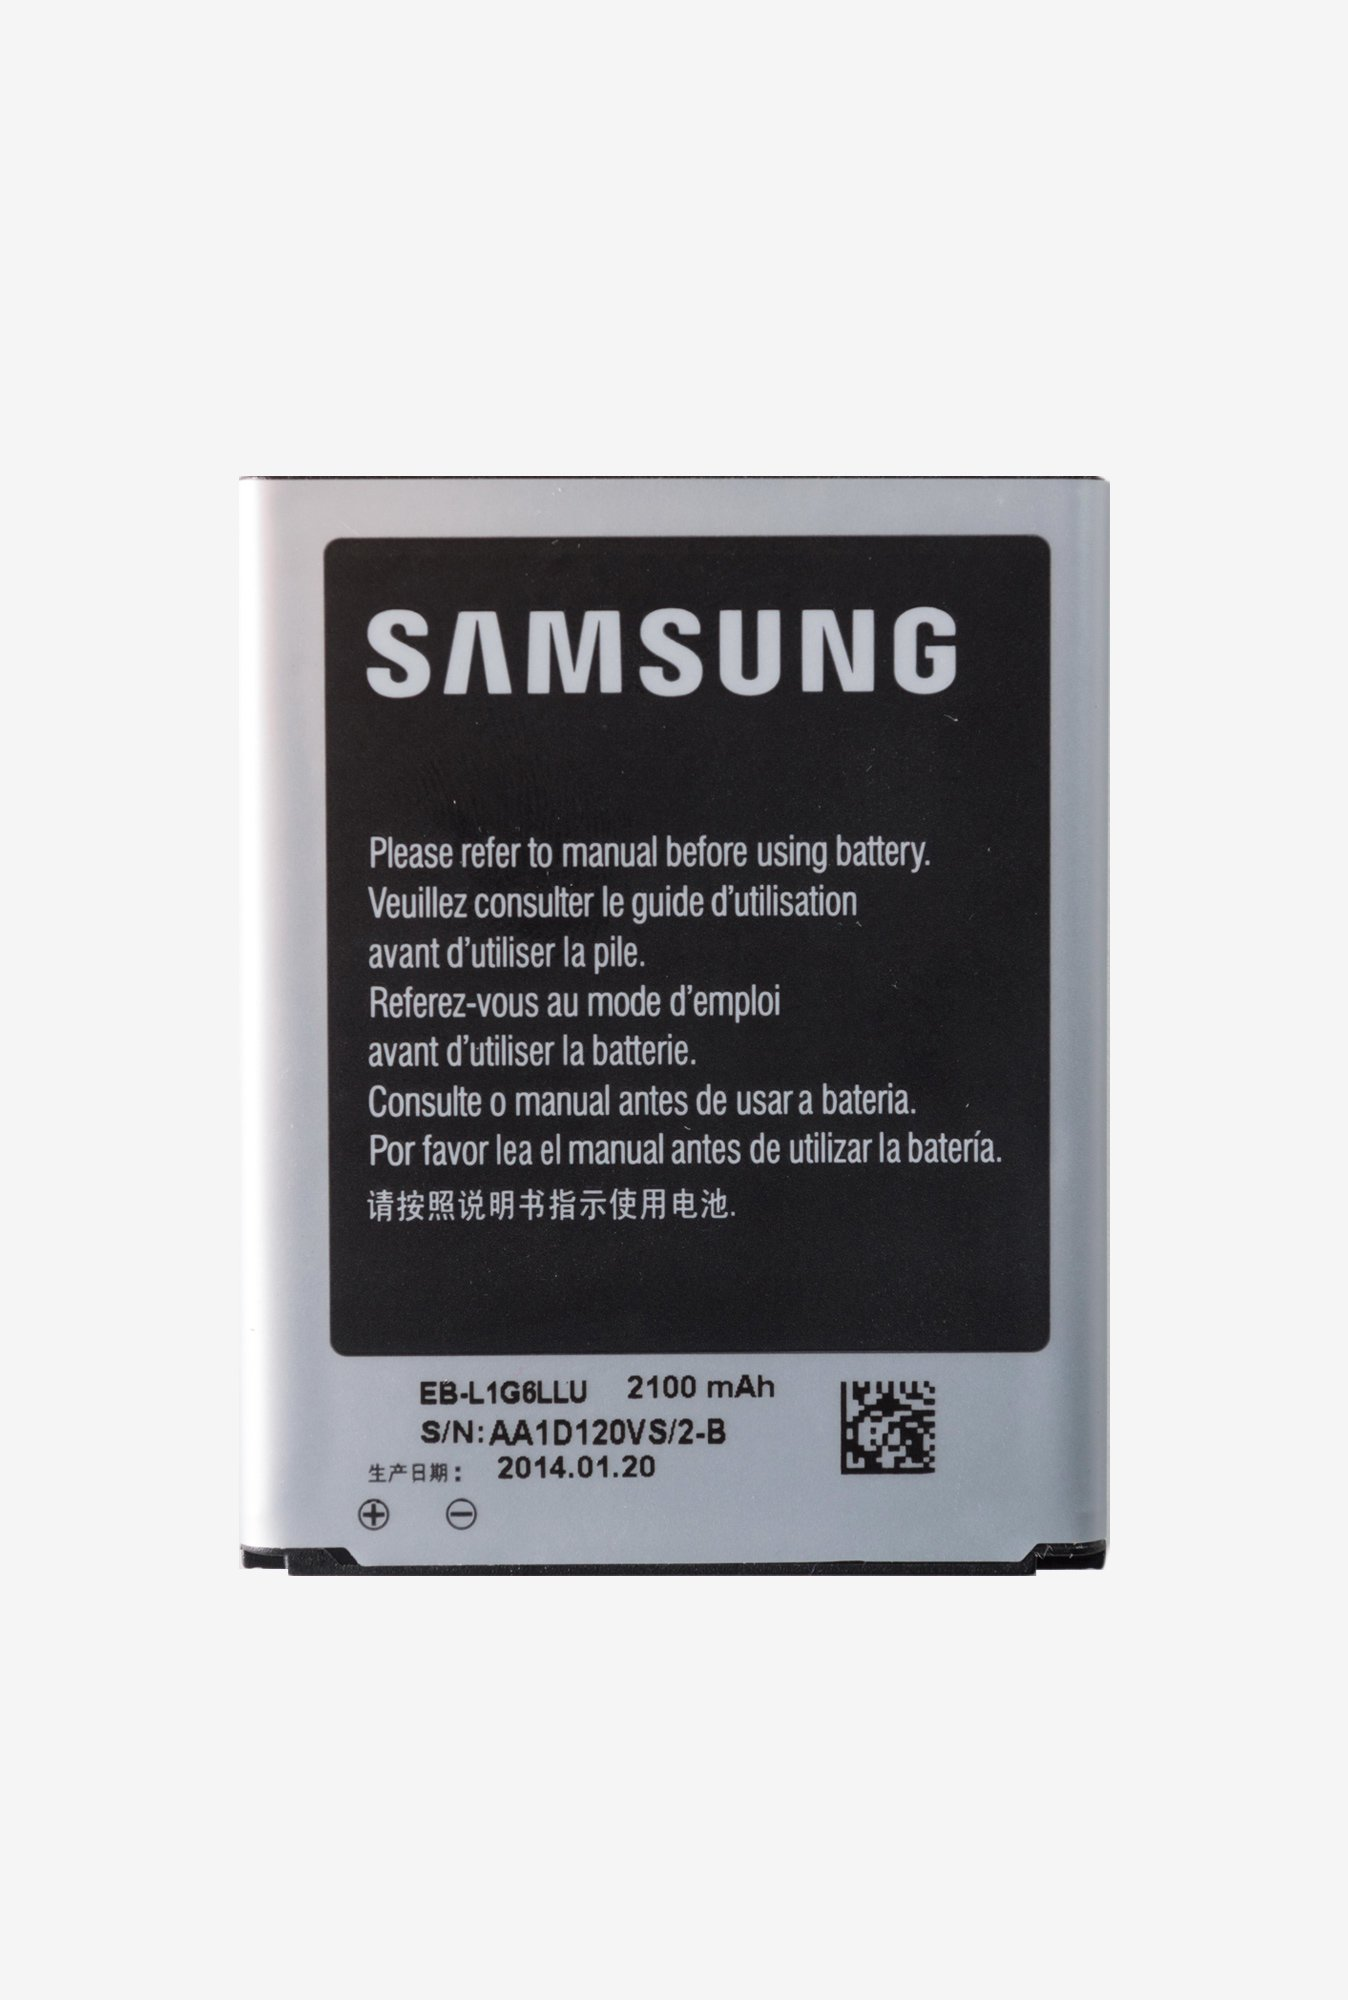 Samsung EB-L1G6LLU Mobile Phone Battery